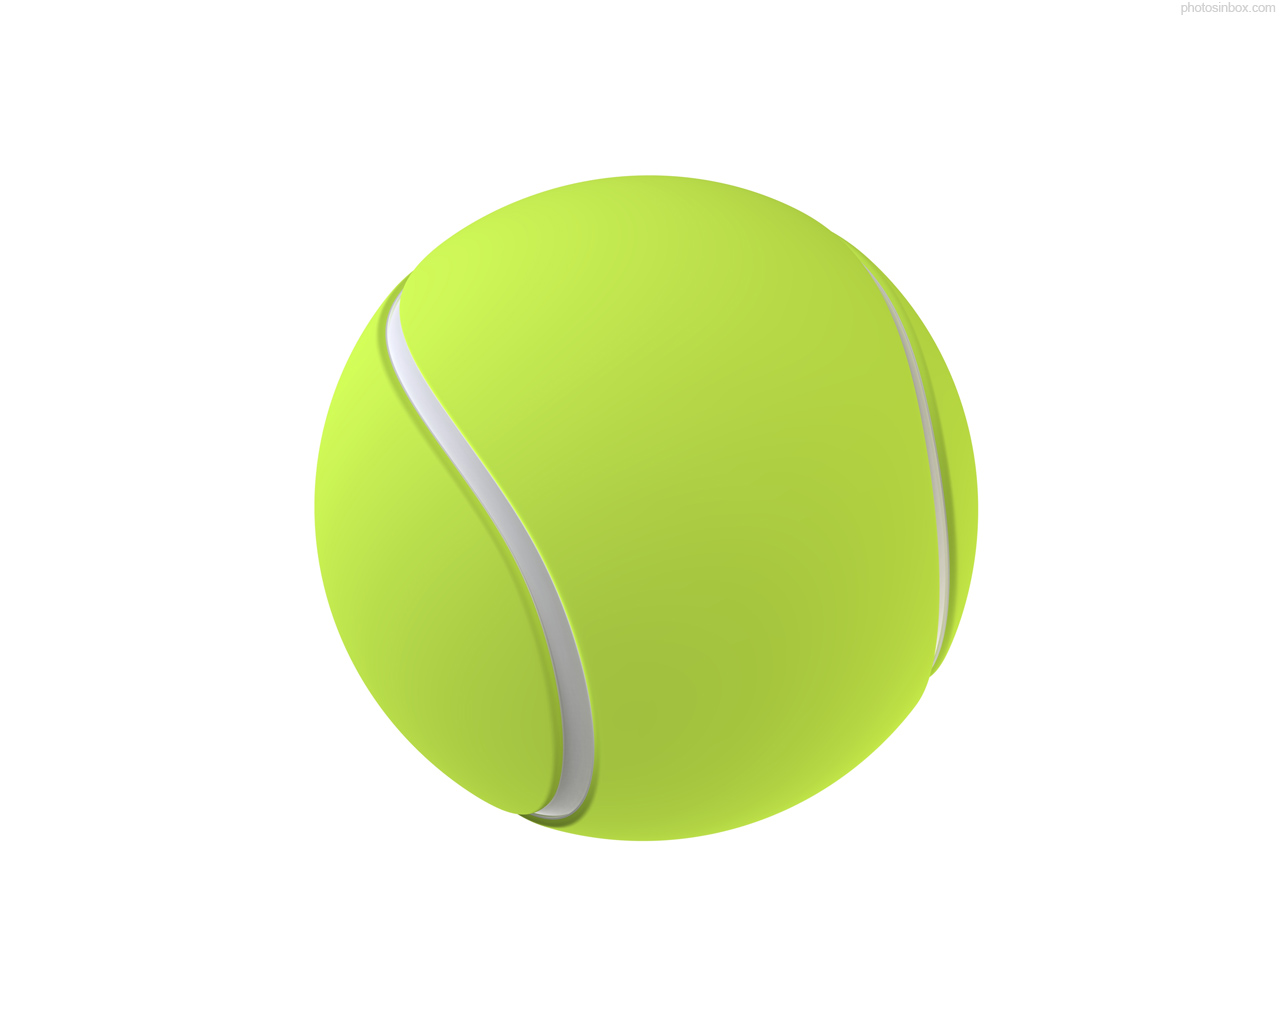 Clipart tennis ball graphic black and white download Free Tennis Ball Cliparts, Download Free Clip Art, Free Clip Art on ... graphic black and white download